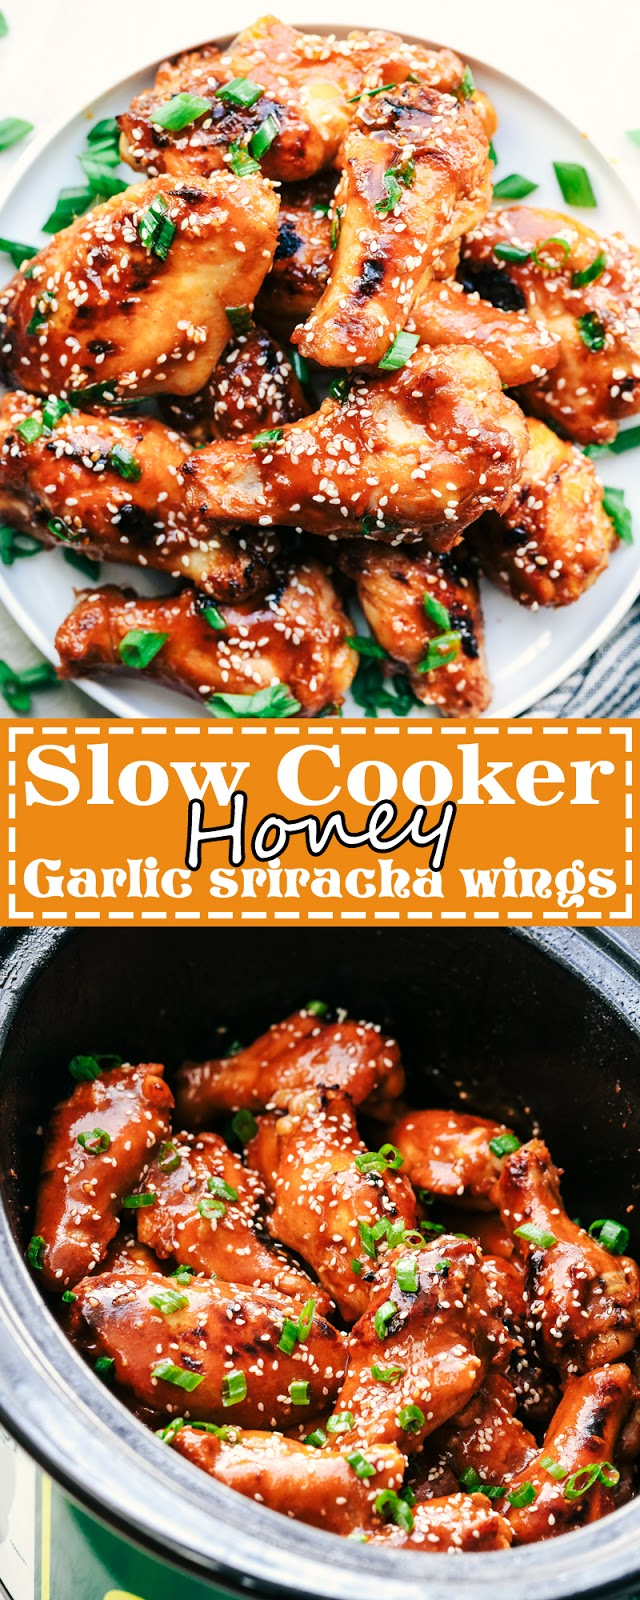 SLOW COOKER HONEY GARLIC SRIRACHA WINGS